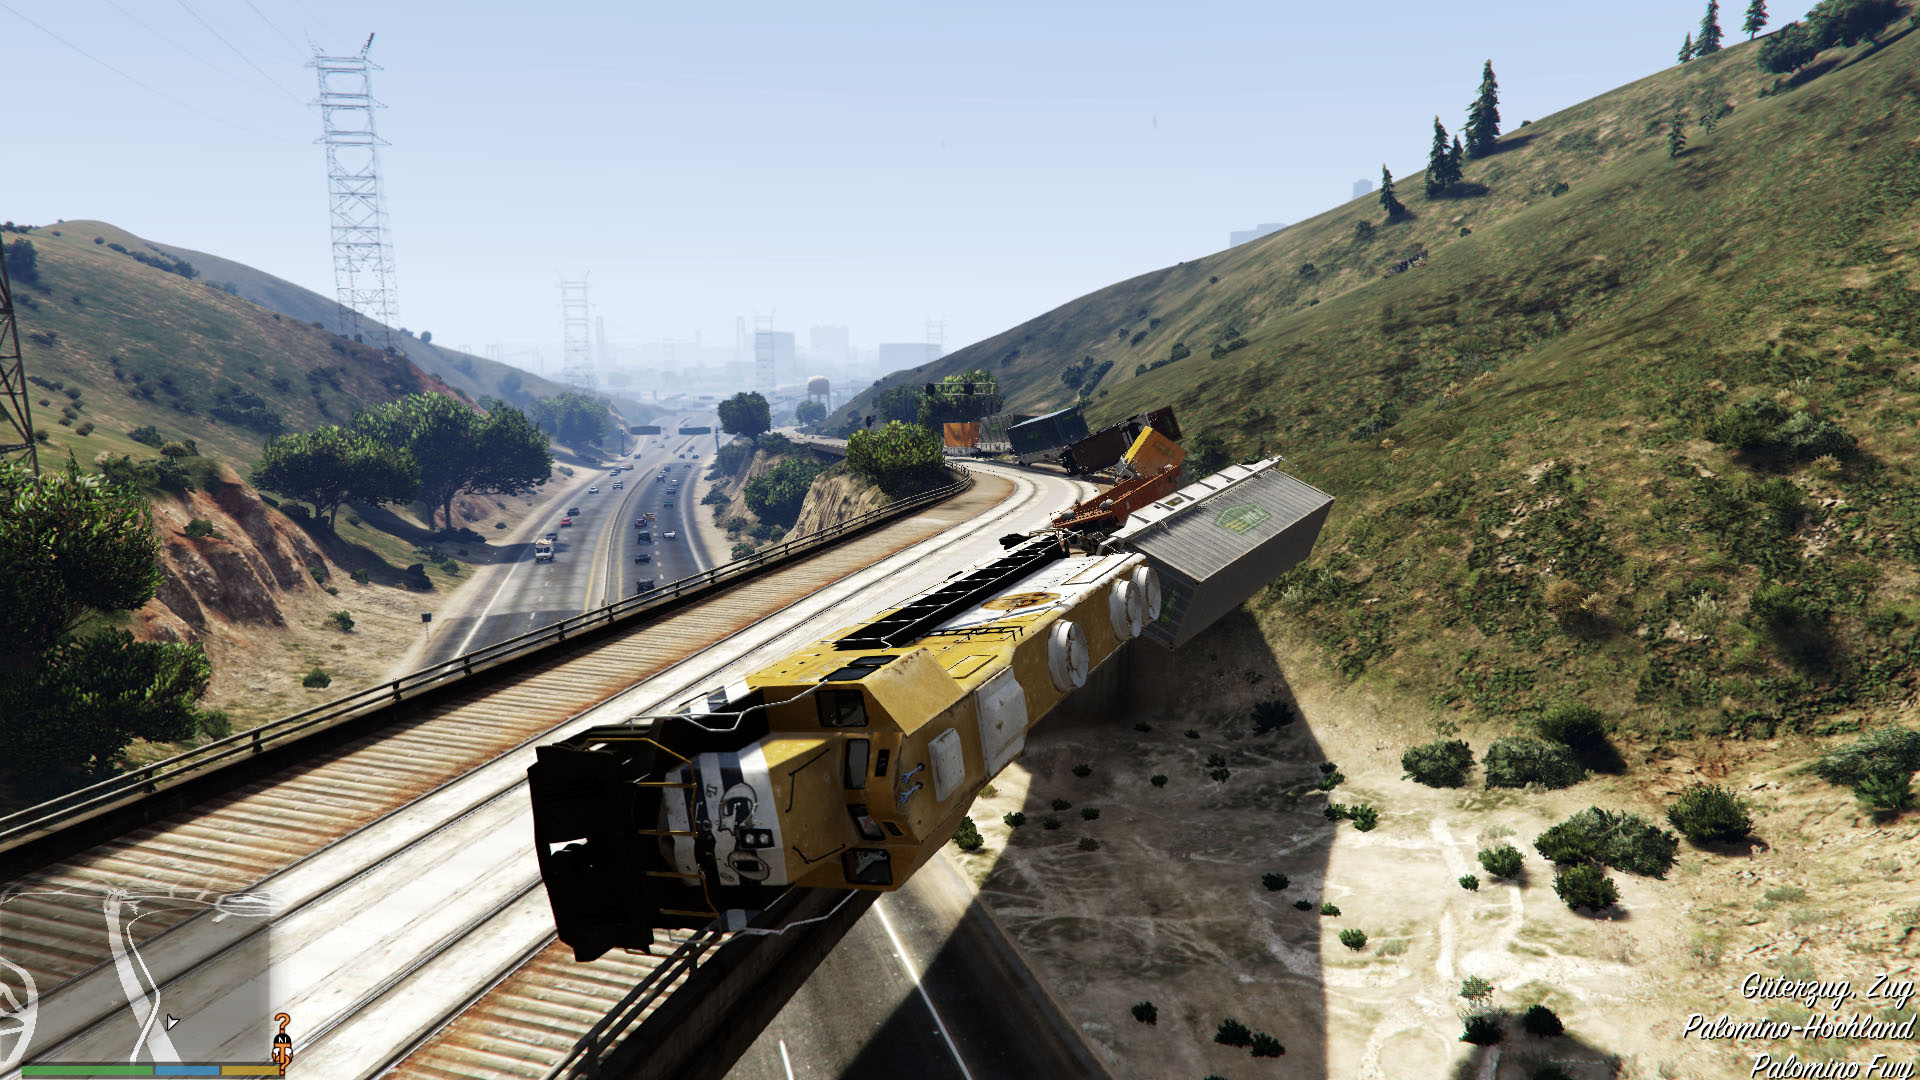 gta v drone with Railroad Engineer on Railroad Engineer likewise Here There Be Monsters also See Hear Sniff How Airborne Spies Collect Intel 180958571 as well Militari likewise High End Mini Tower Pc V600f  puter Case Released By Lian Li.